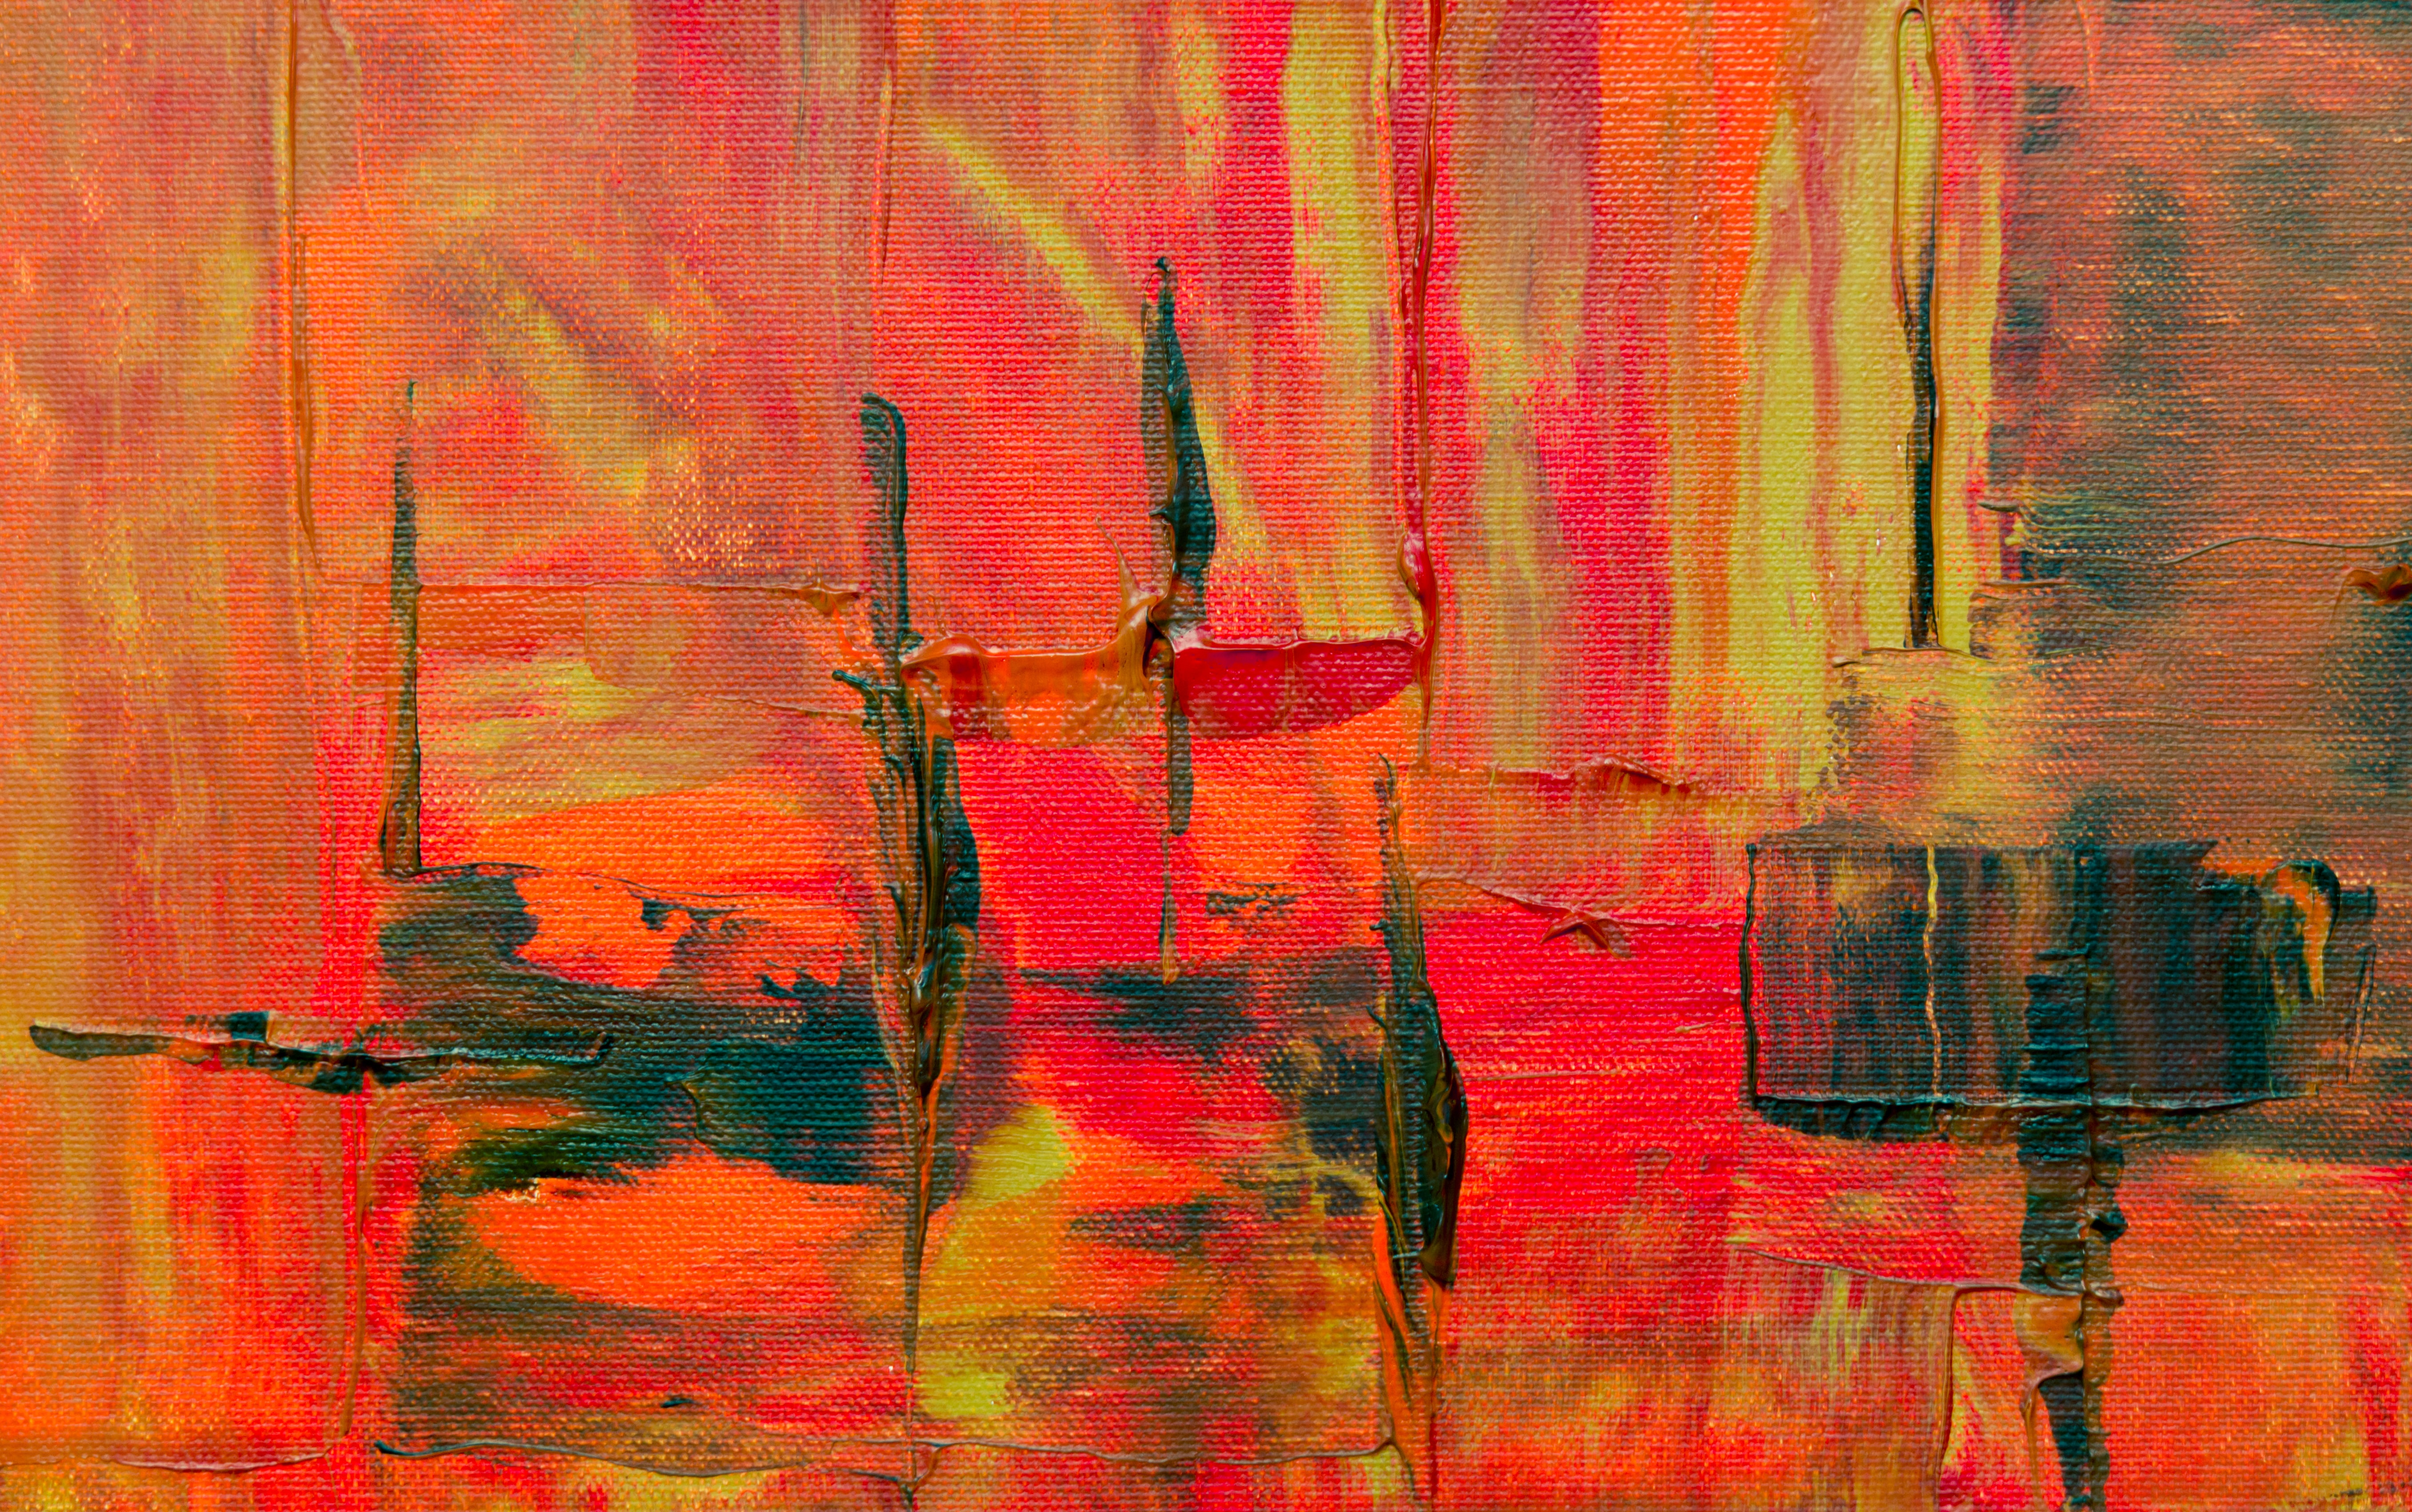 red and yellow abstract painting